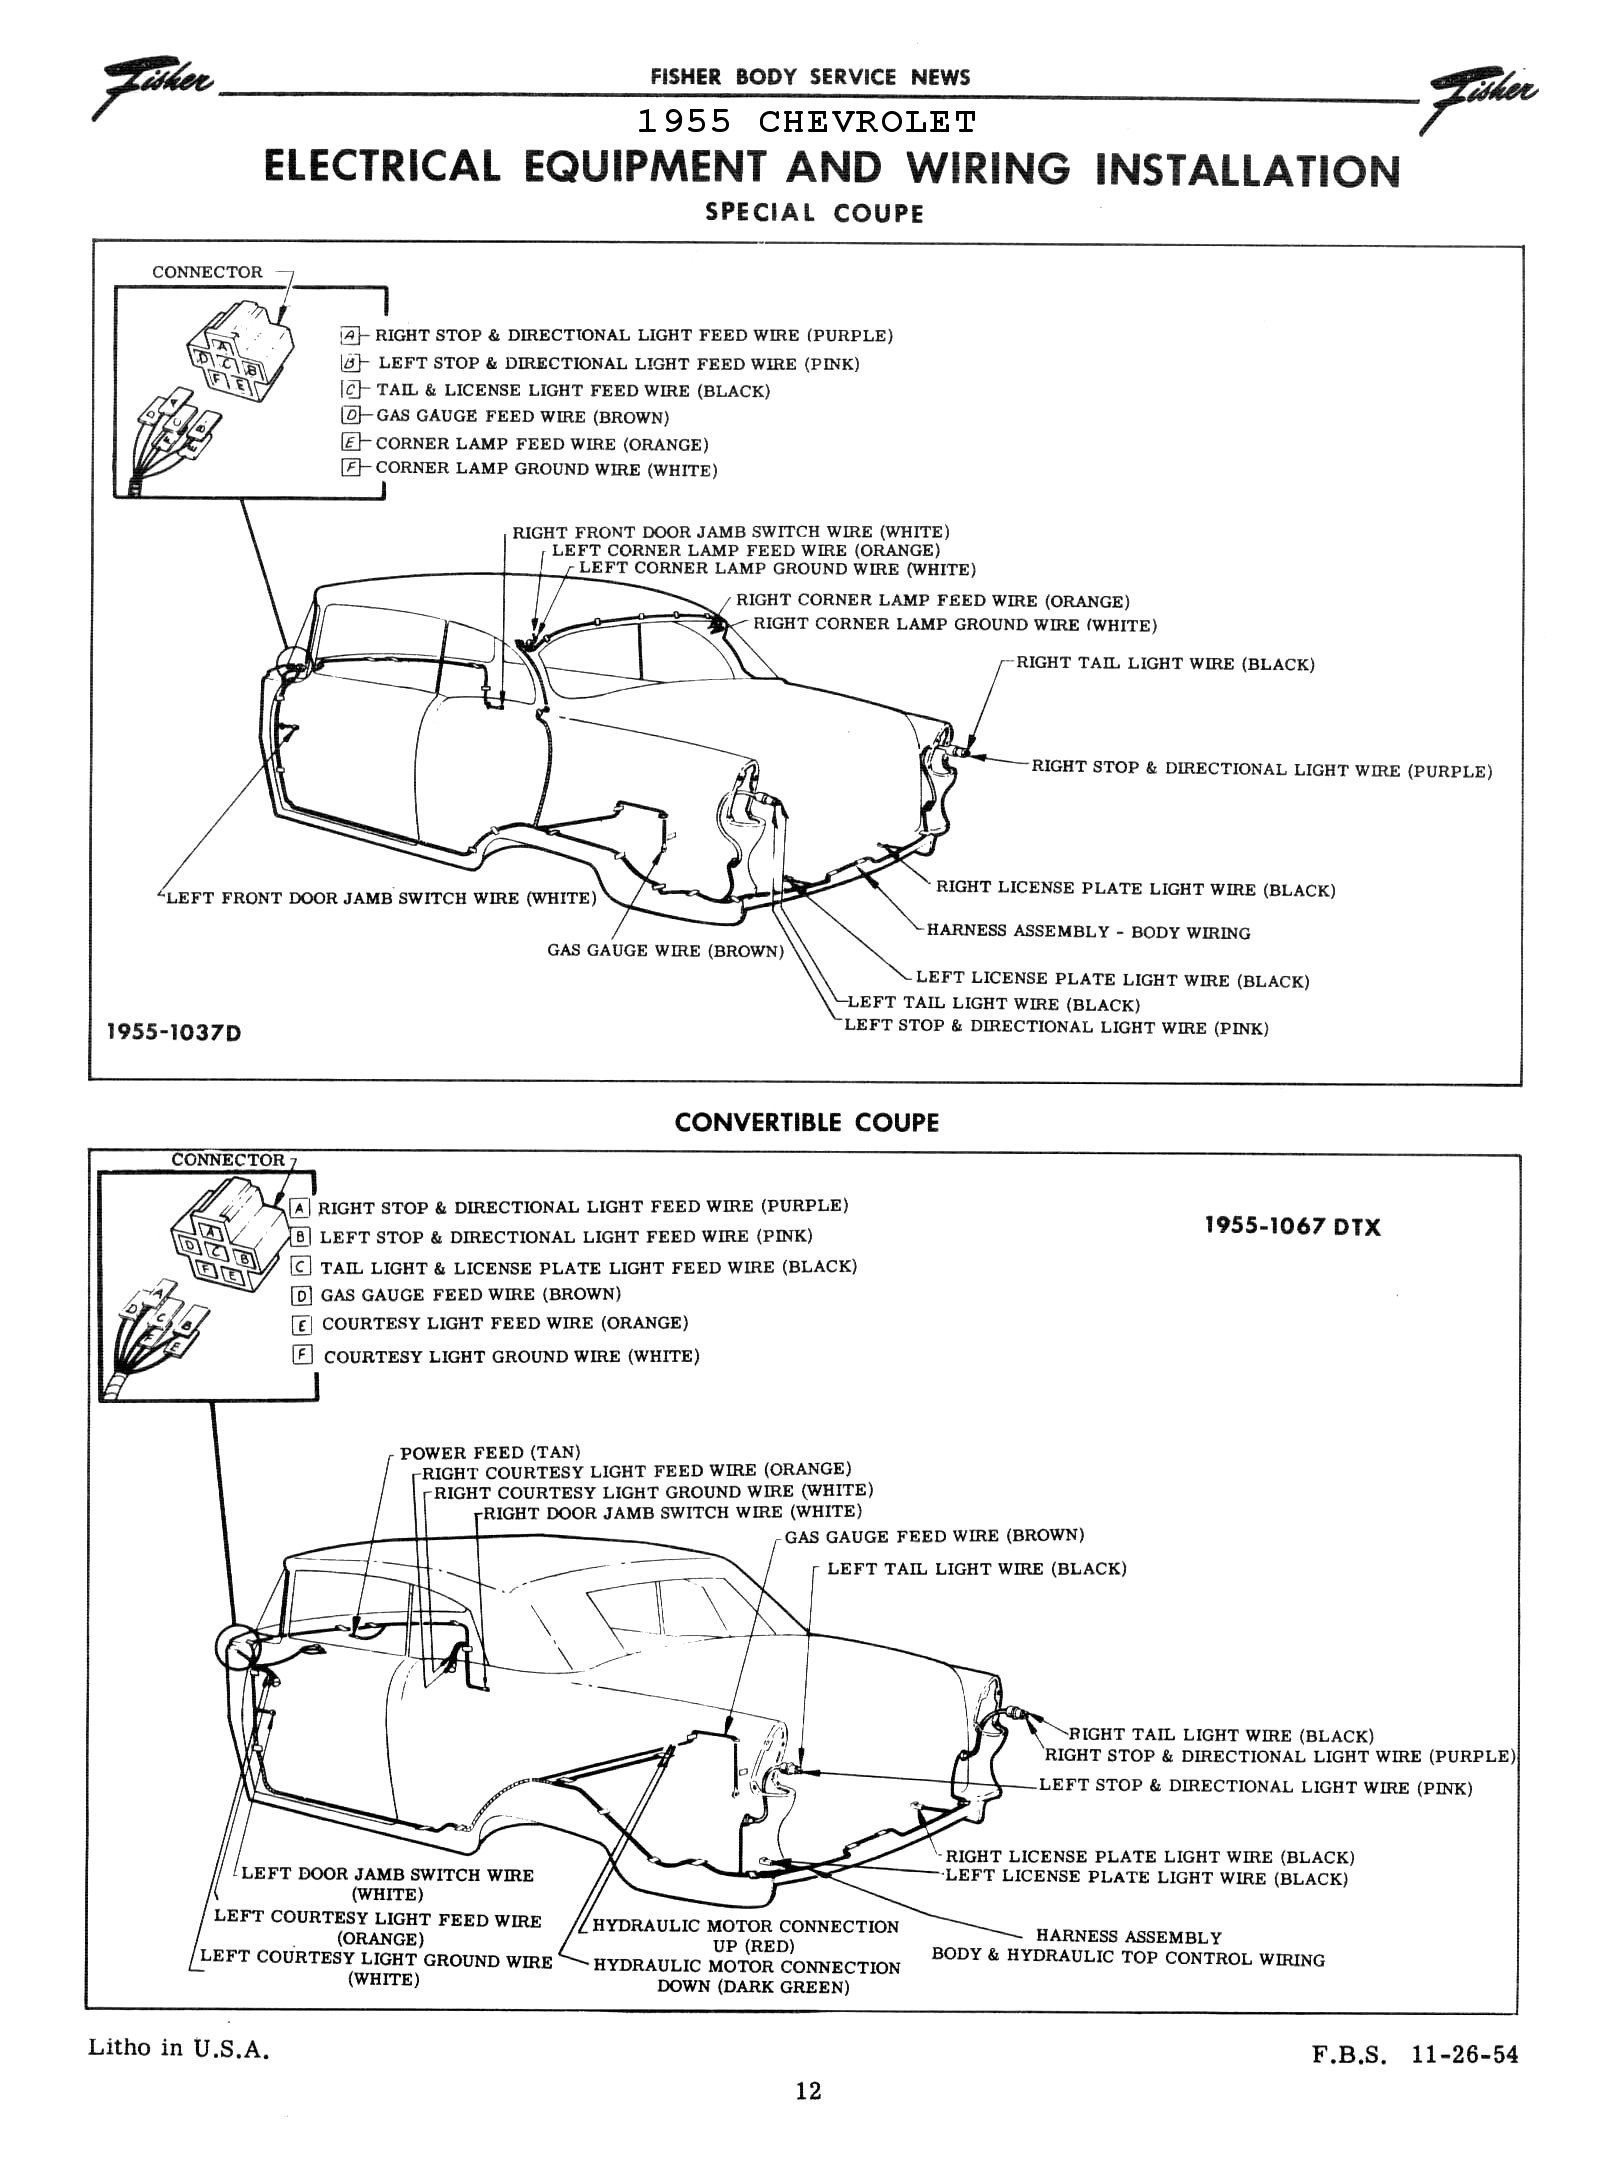 WRG-4423] 57 Bel Air Horn Wiring Diagram on